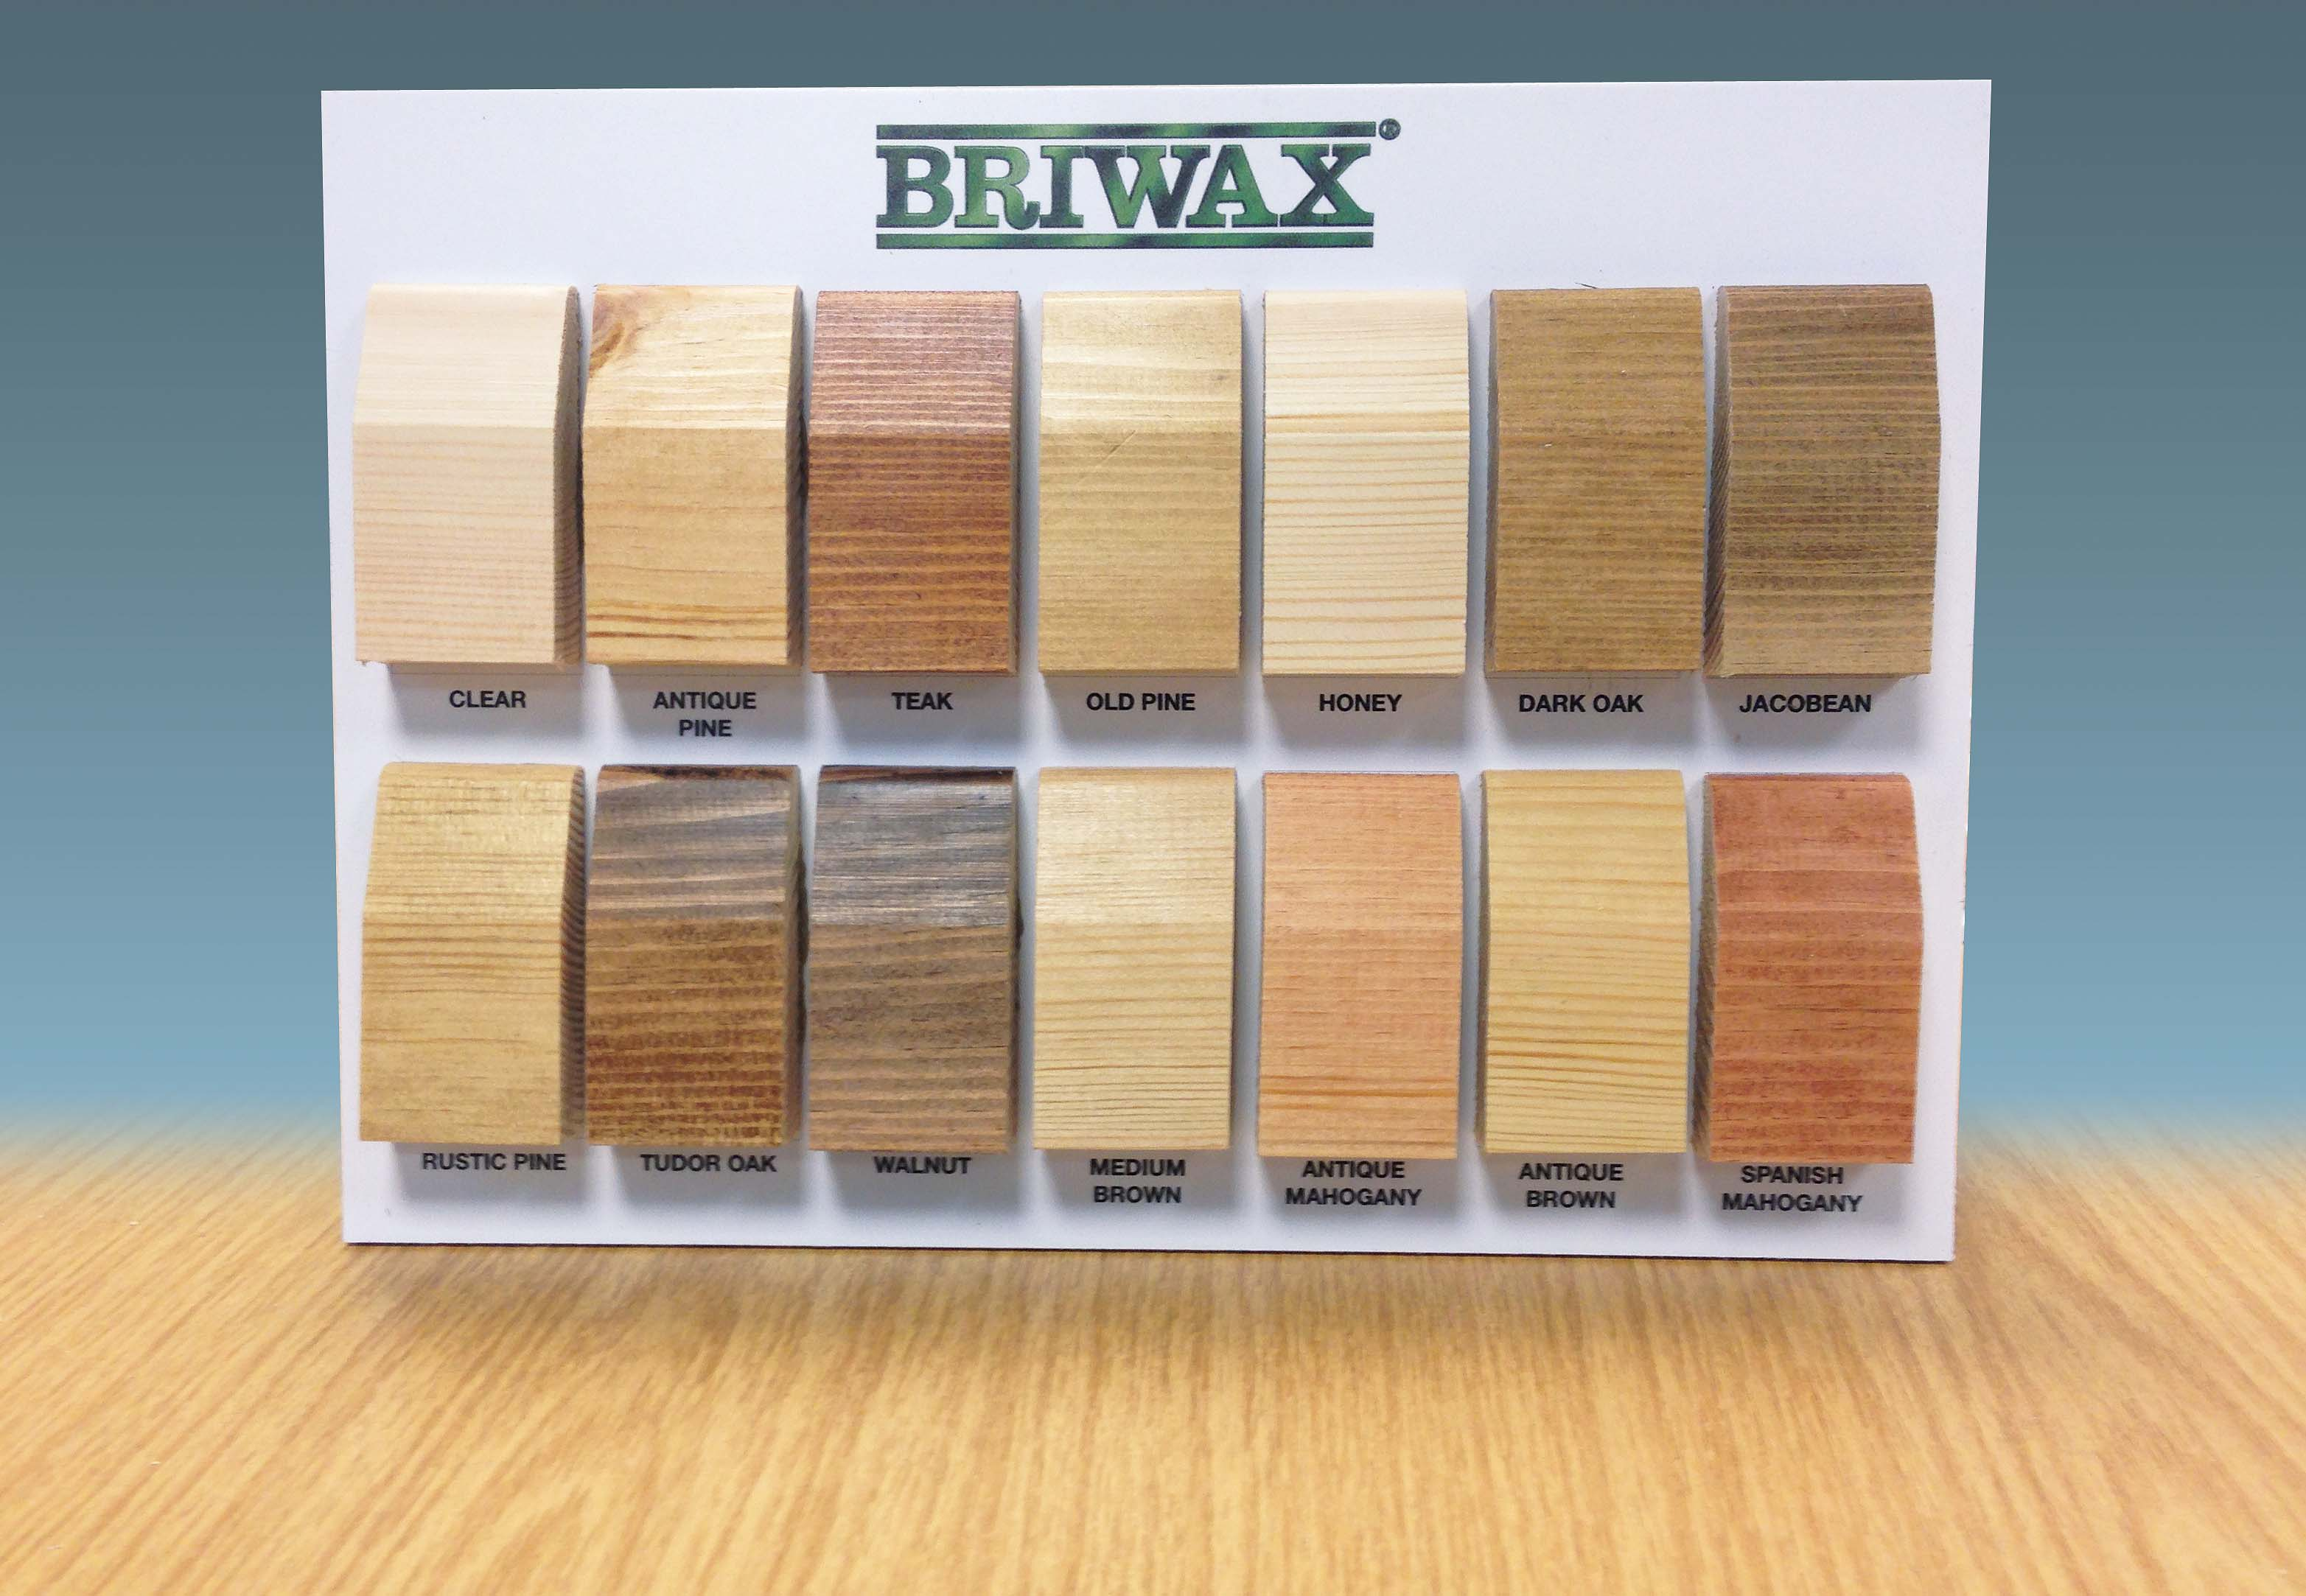 Briwax Antique Pine Best 2000 Antique Decor Ideas